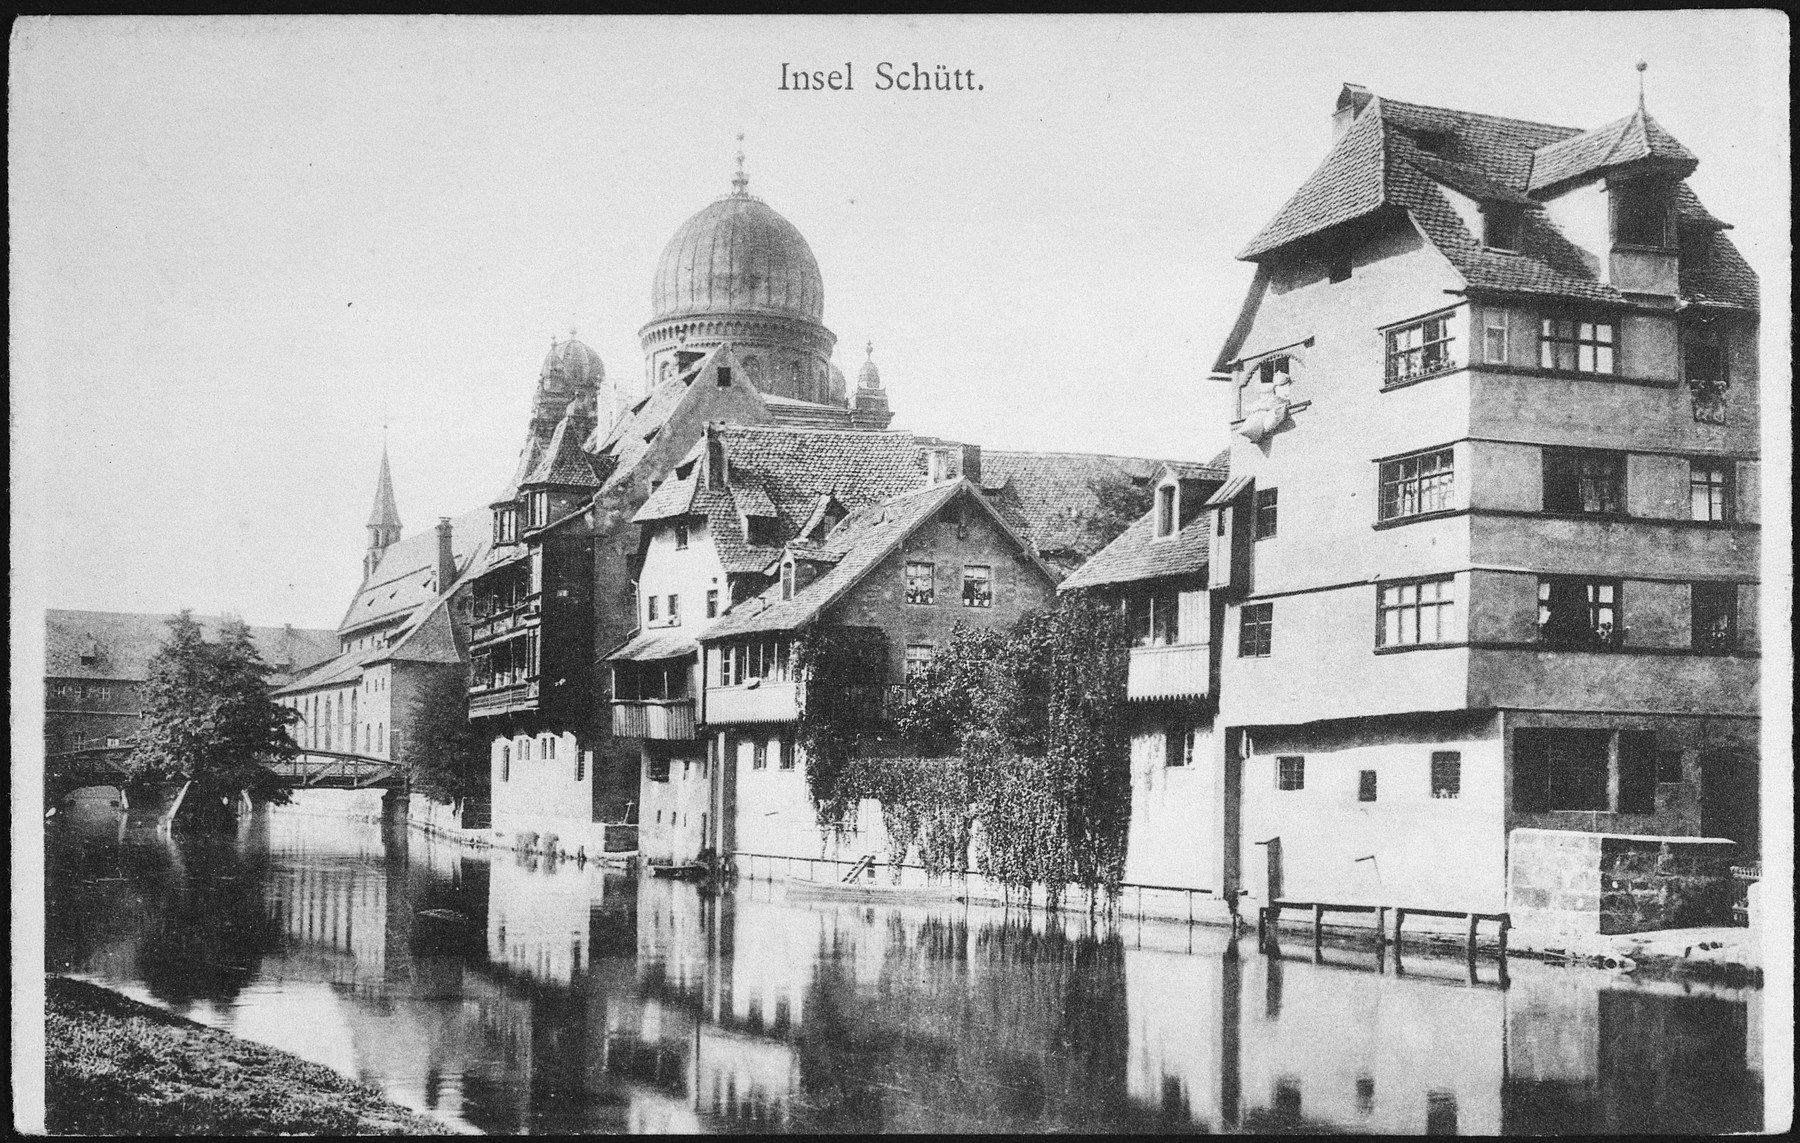 Picture postcard showing a view of the dome of synagogue on the Insel Schuett in the Pegnitz River in  Nuremberg, Germany.